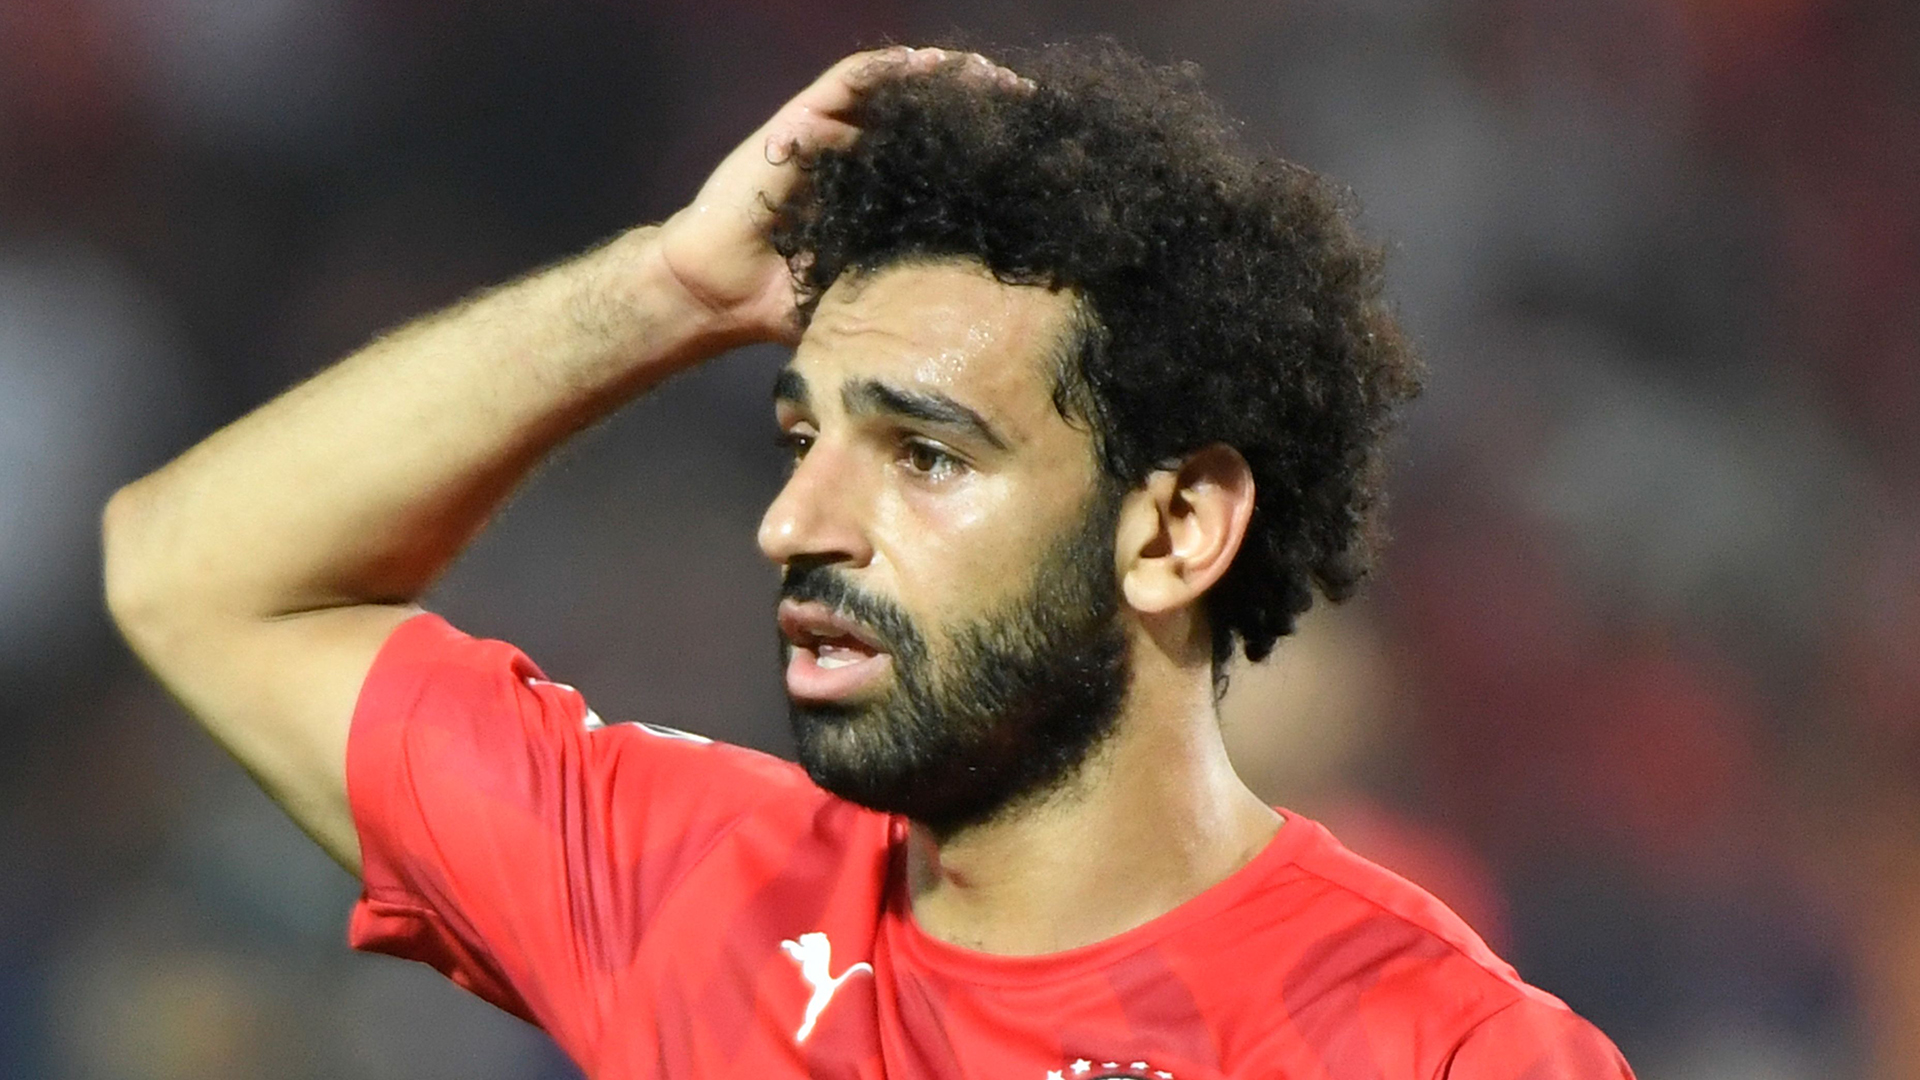 Afcon 2021 Qualifiers: Egypt's Salah ruled out of Kenya and Comoros Islands clashes